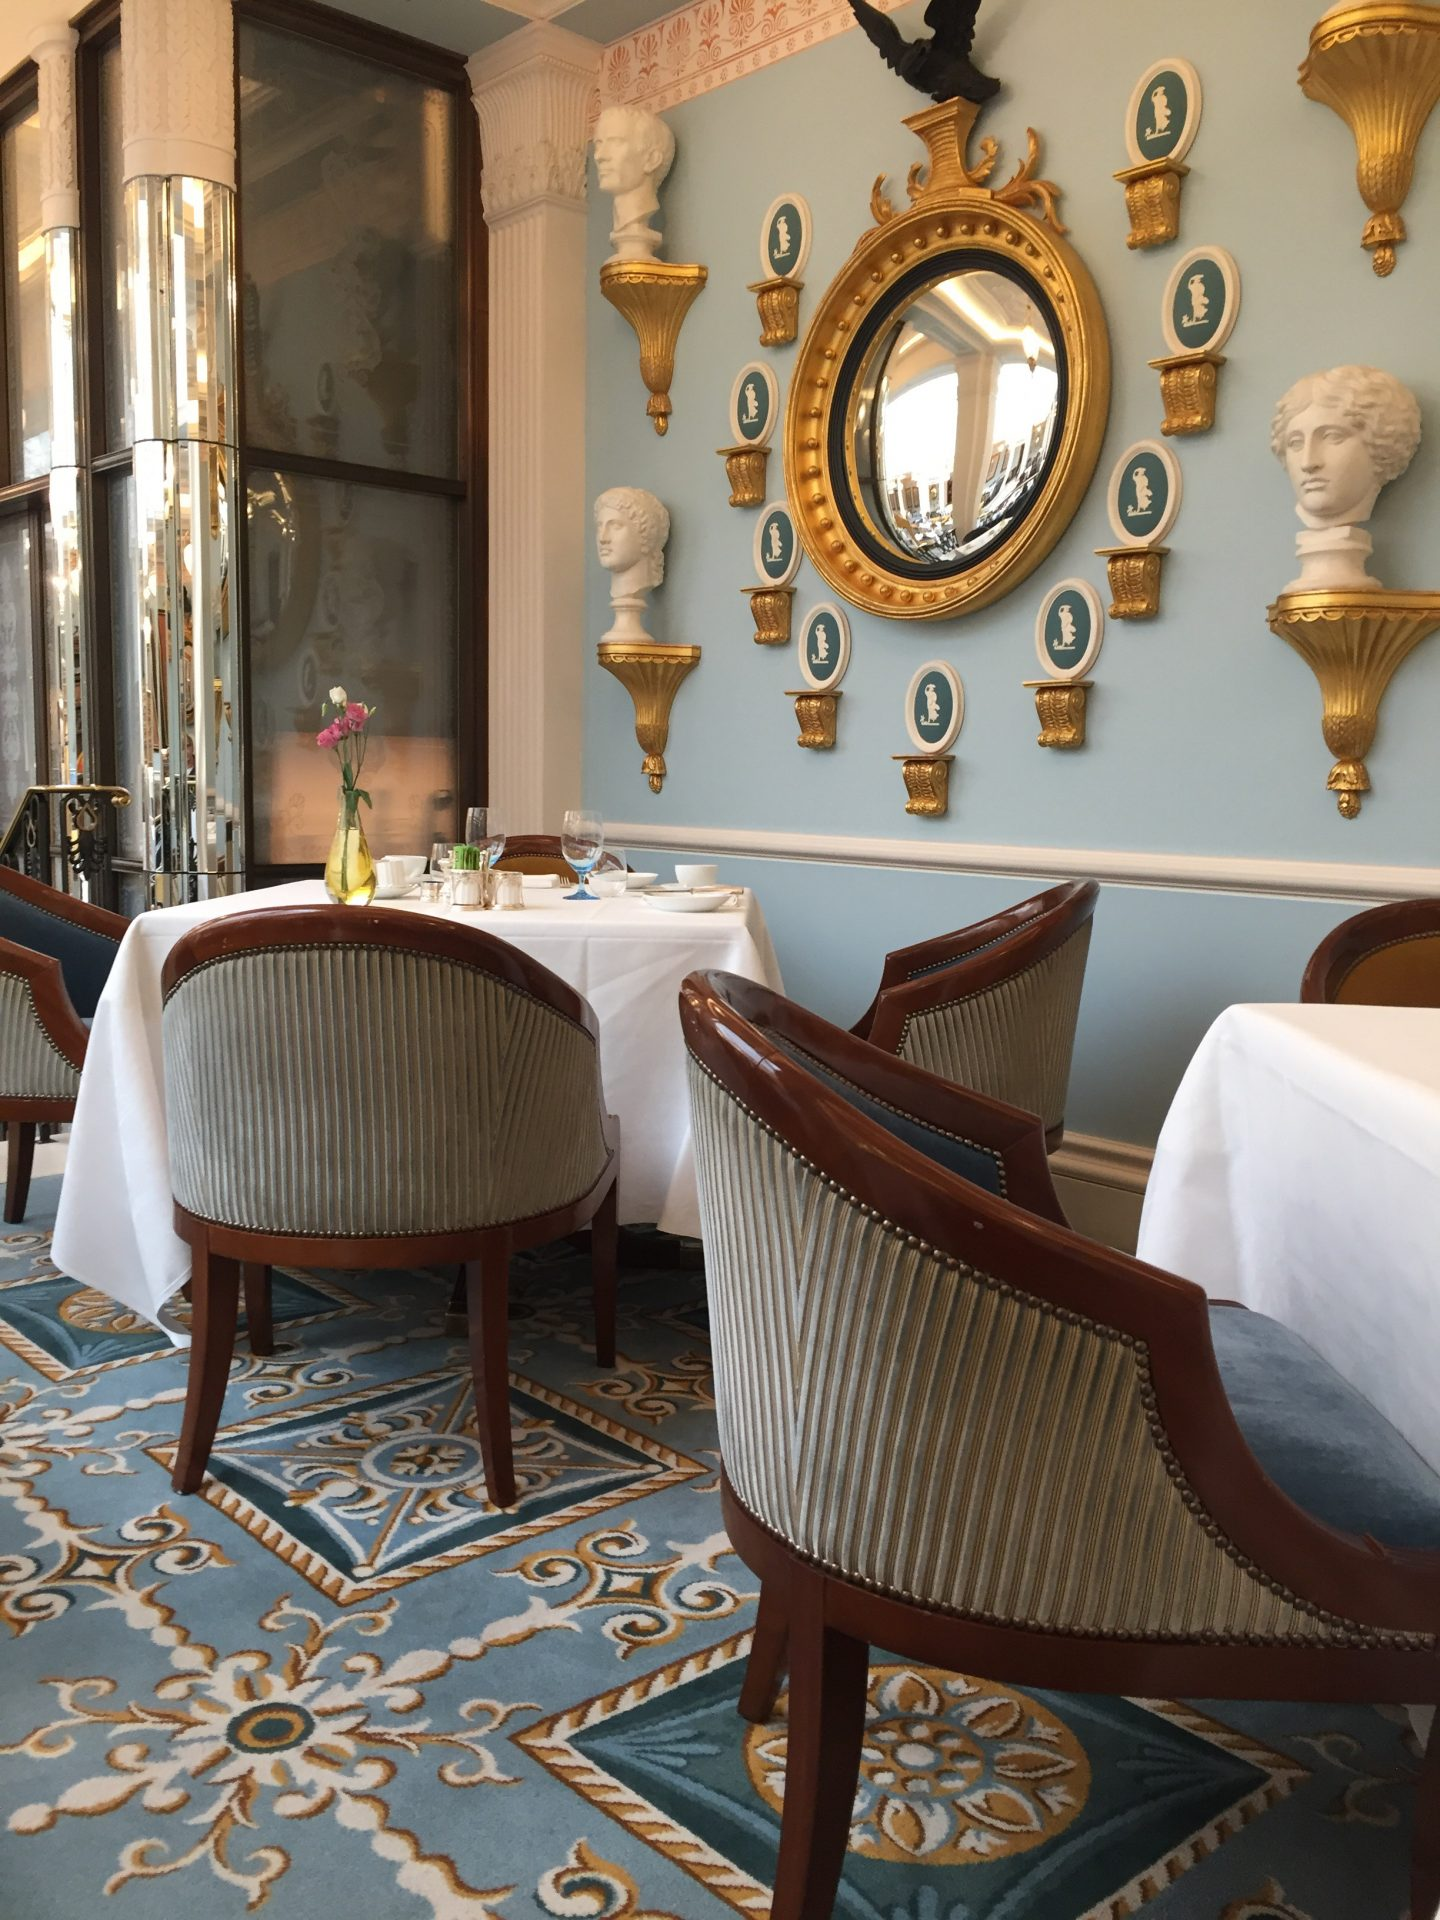 A luxurious breakfast at The Lanesborough